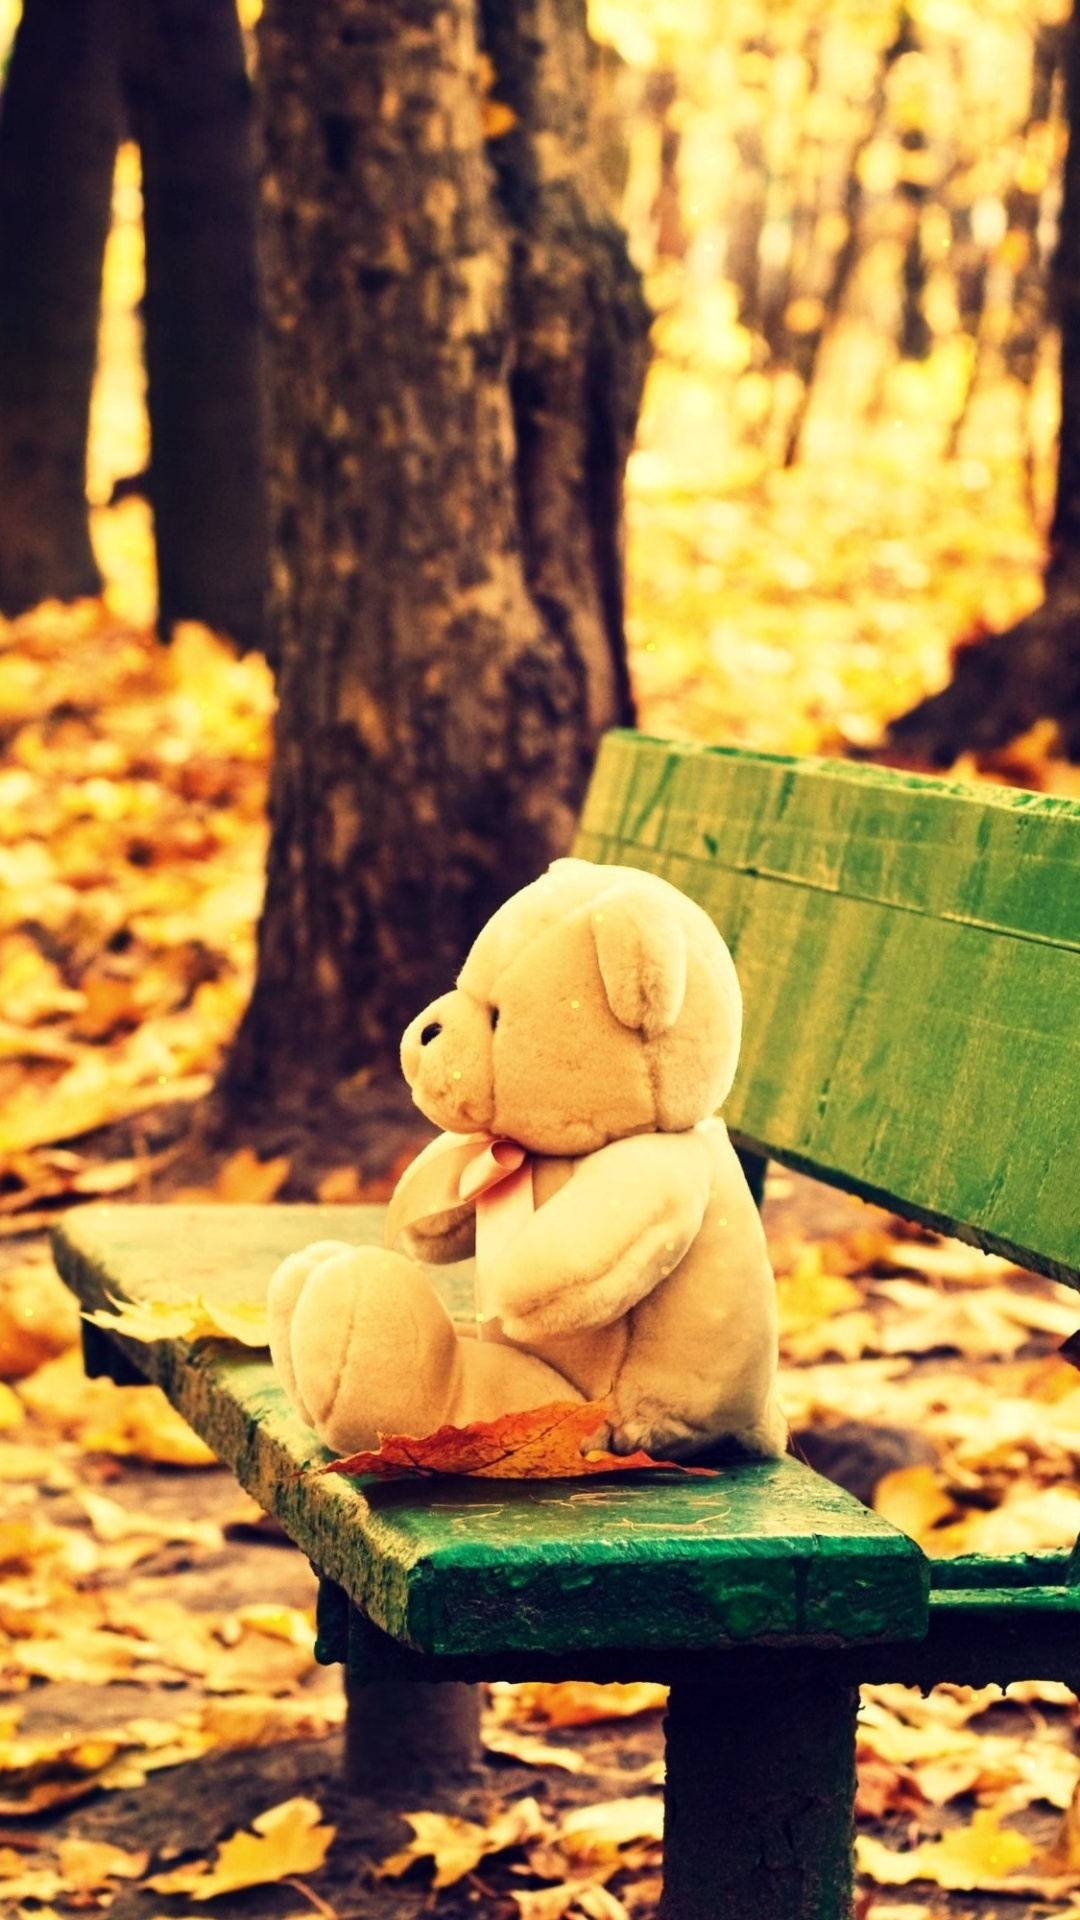 Www Alone Girl Wallpapers Com Sad Alone Teddy Bear Wallpapers 1080x1920 558825